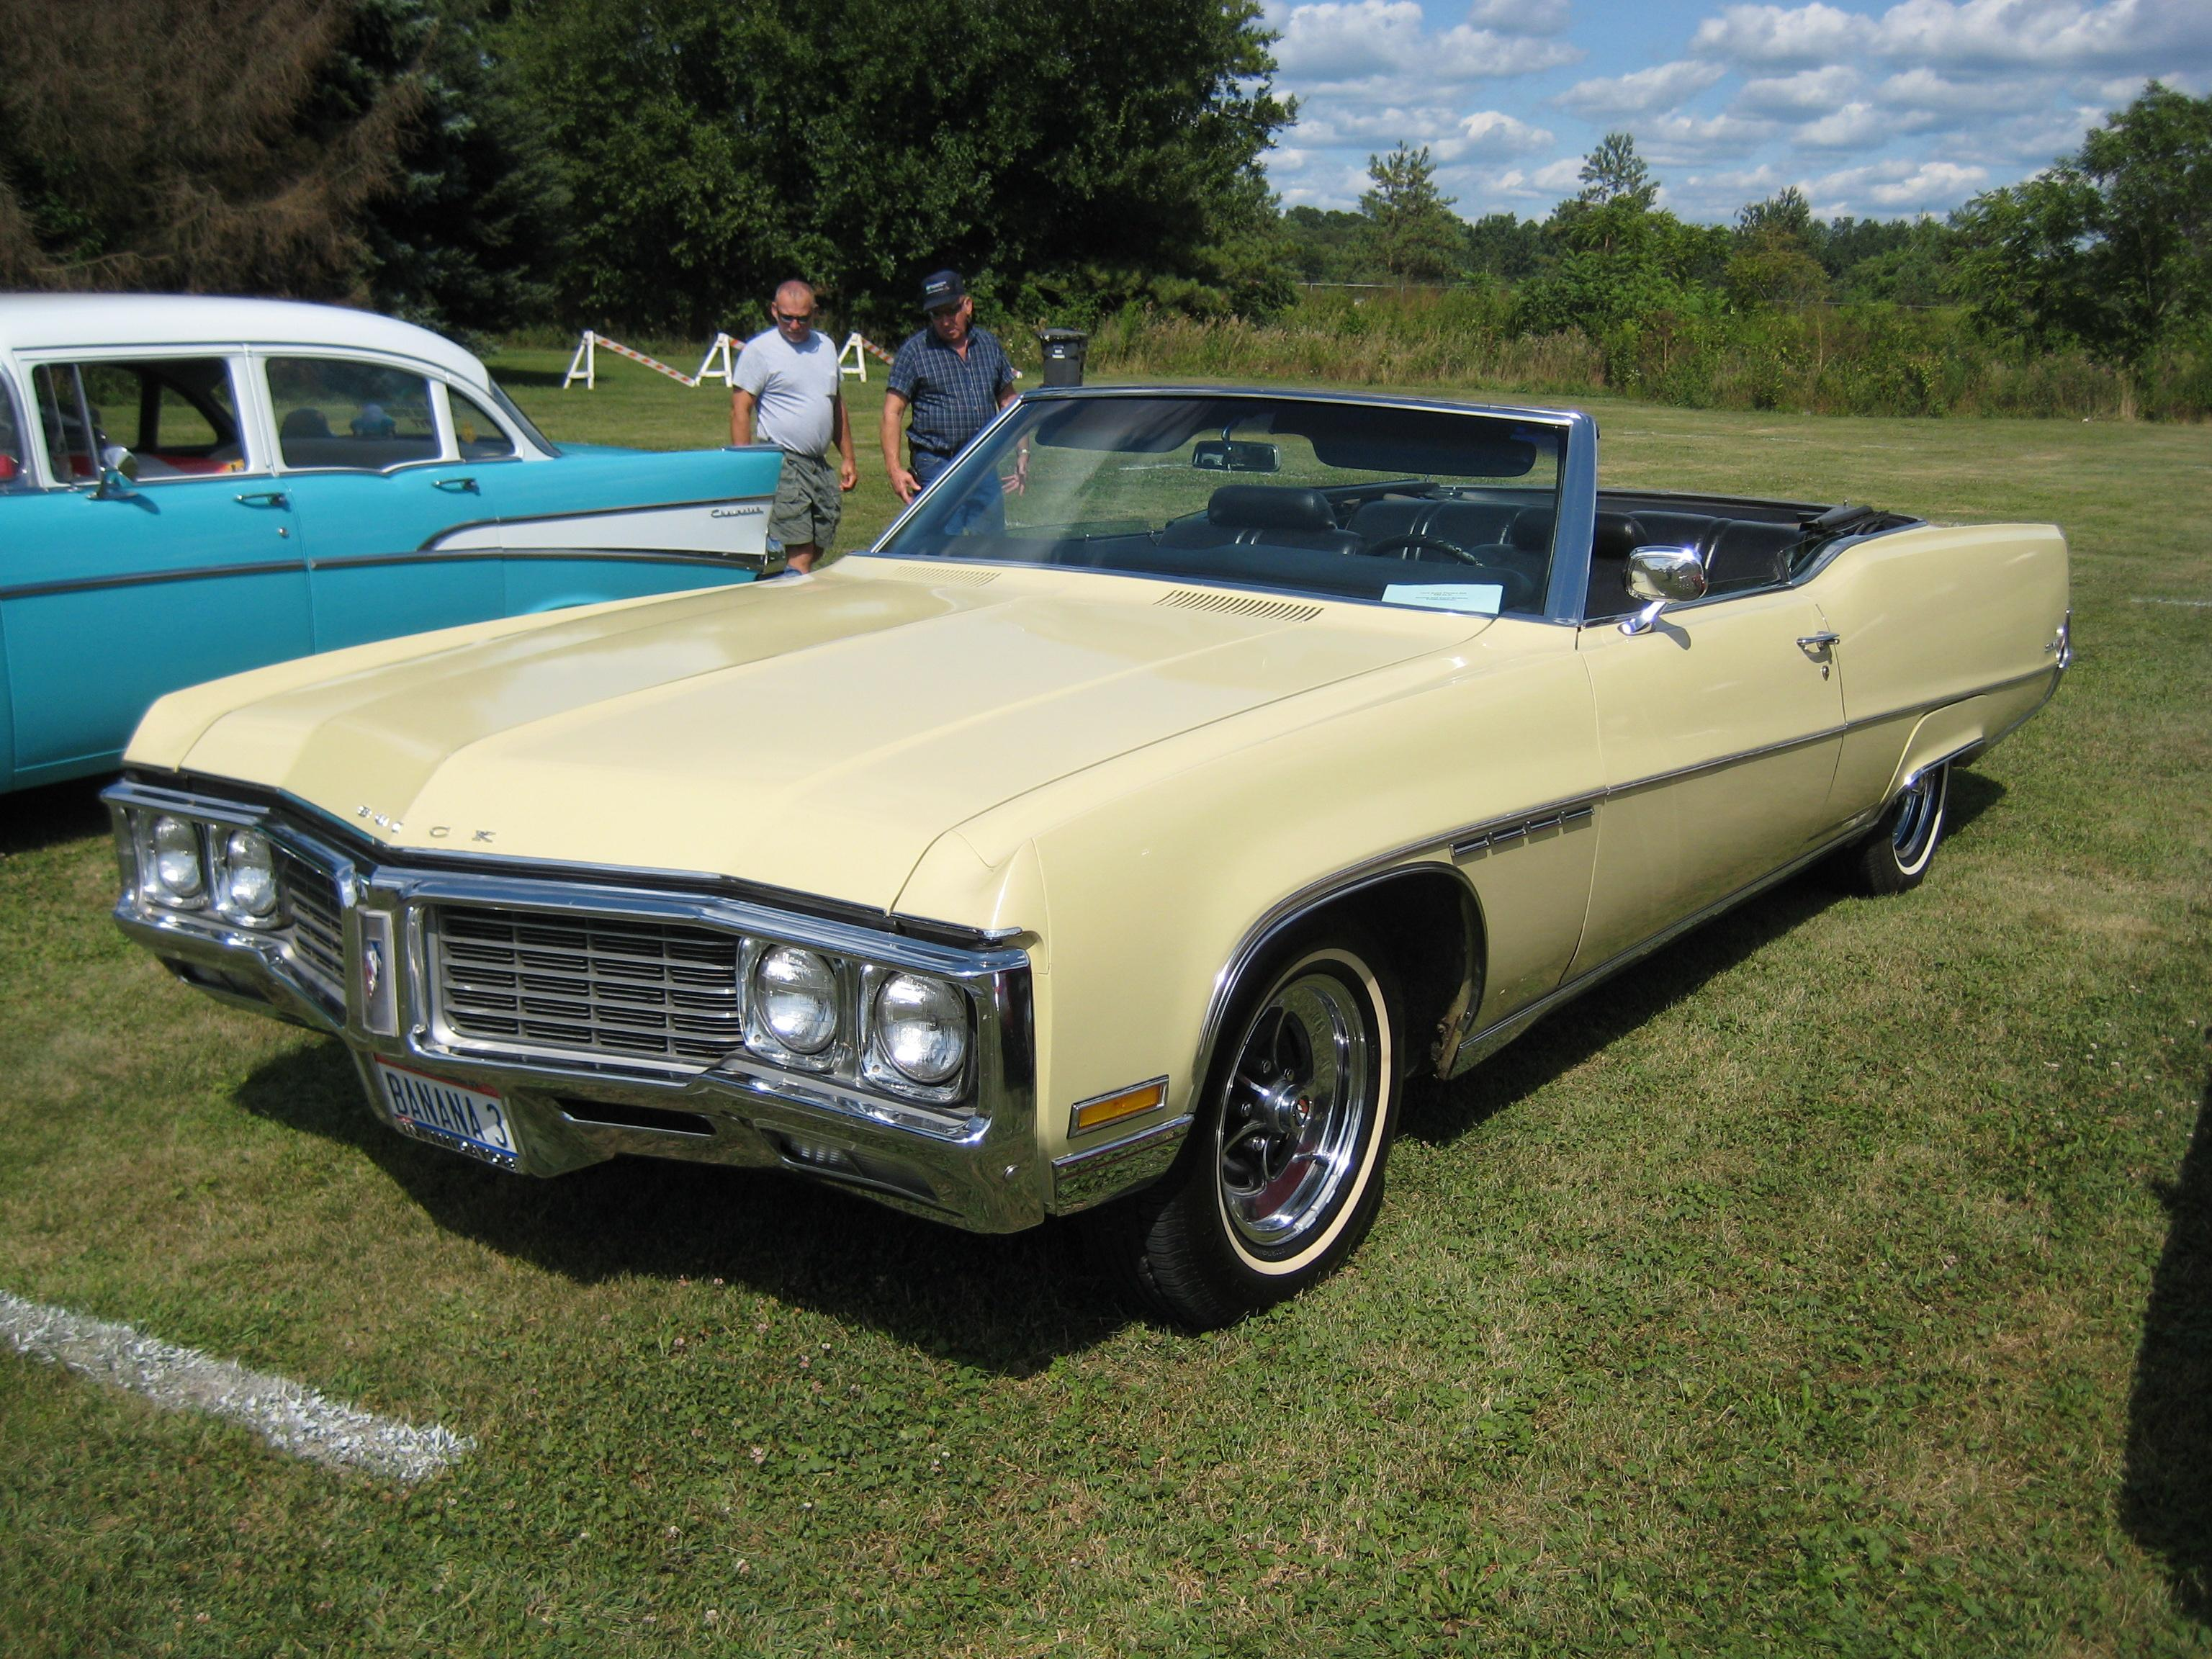 Turquoise57Chevy 1970 Buick Electra